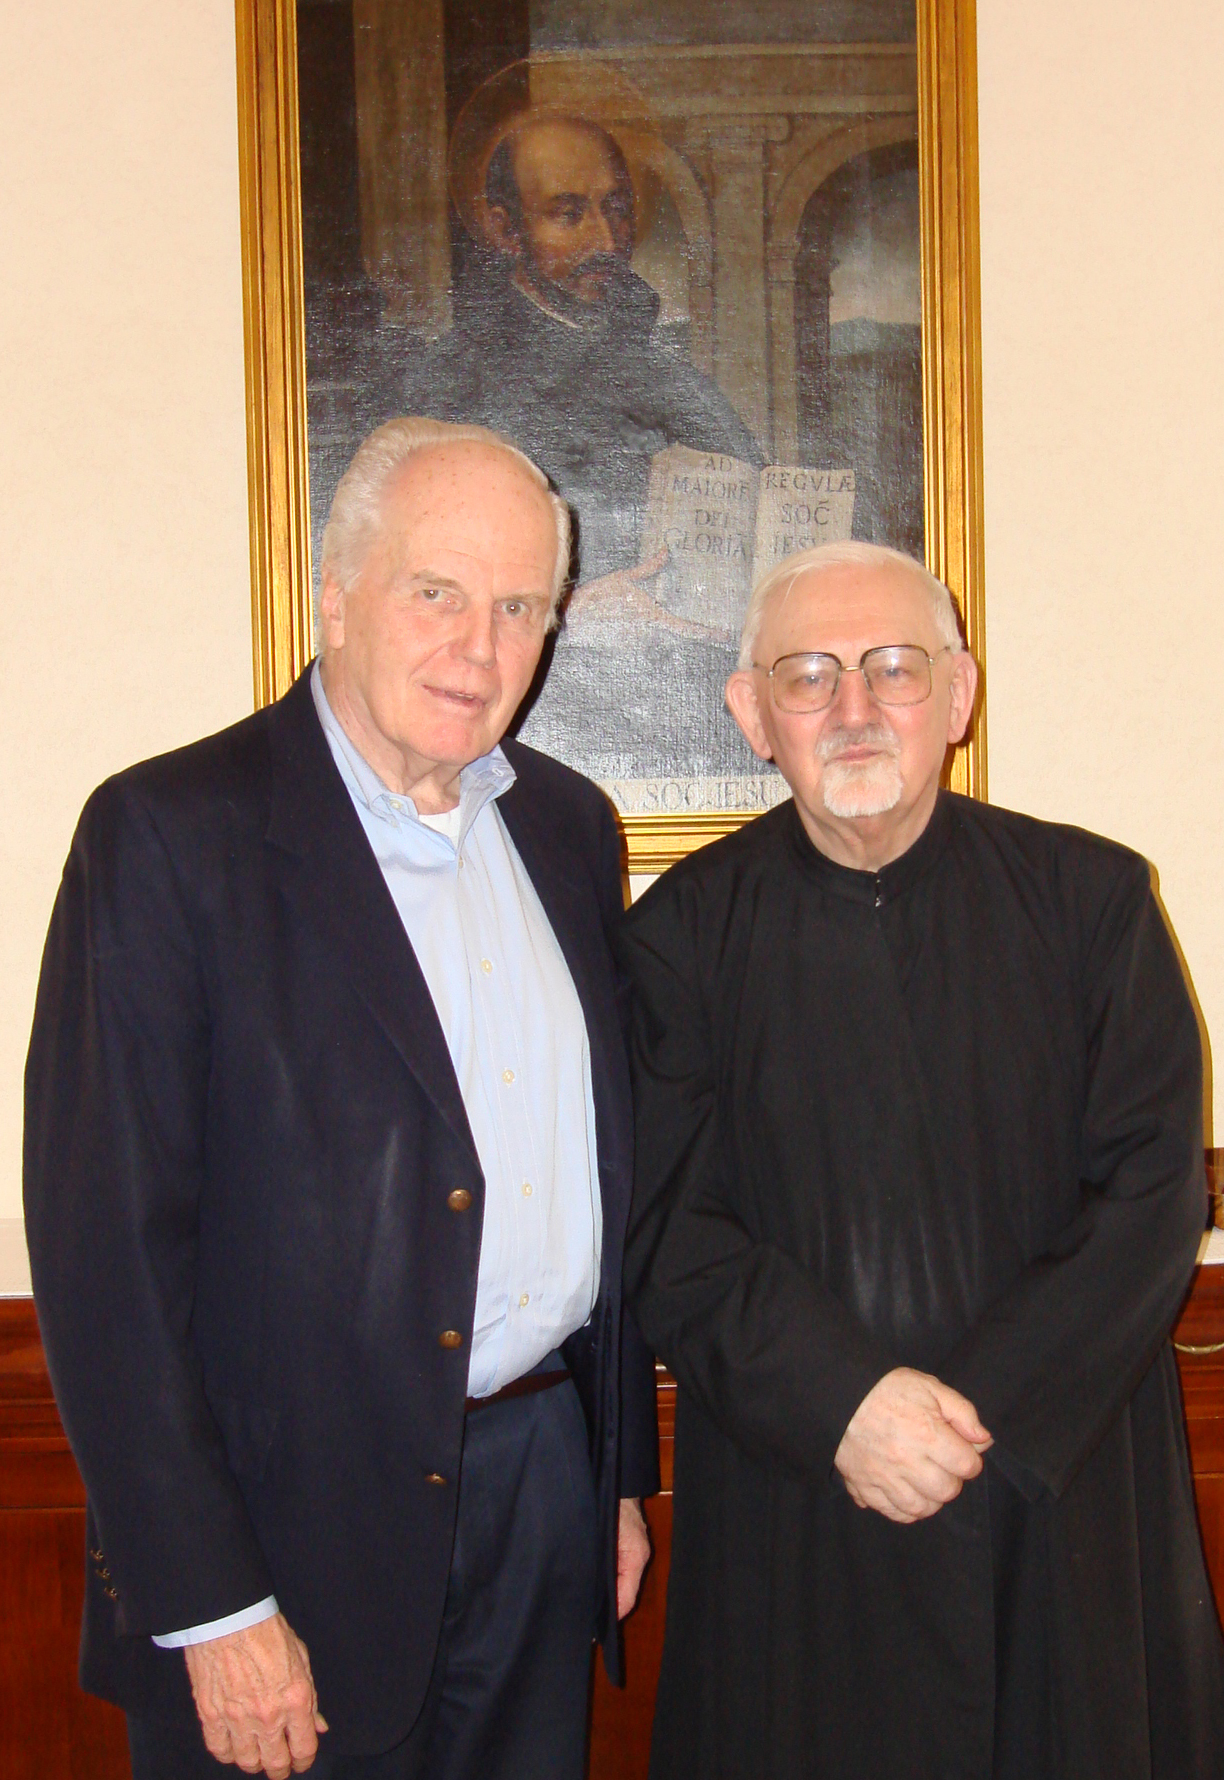 Fr. Currie with Rev. Peter Hans Kolvenbach, S.J., former Superior General of the Society of Jesus